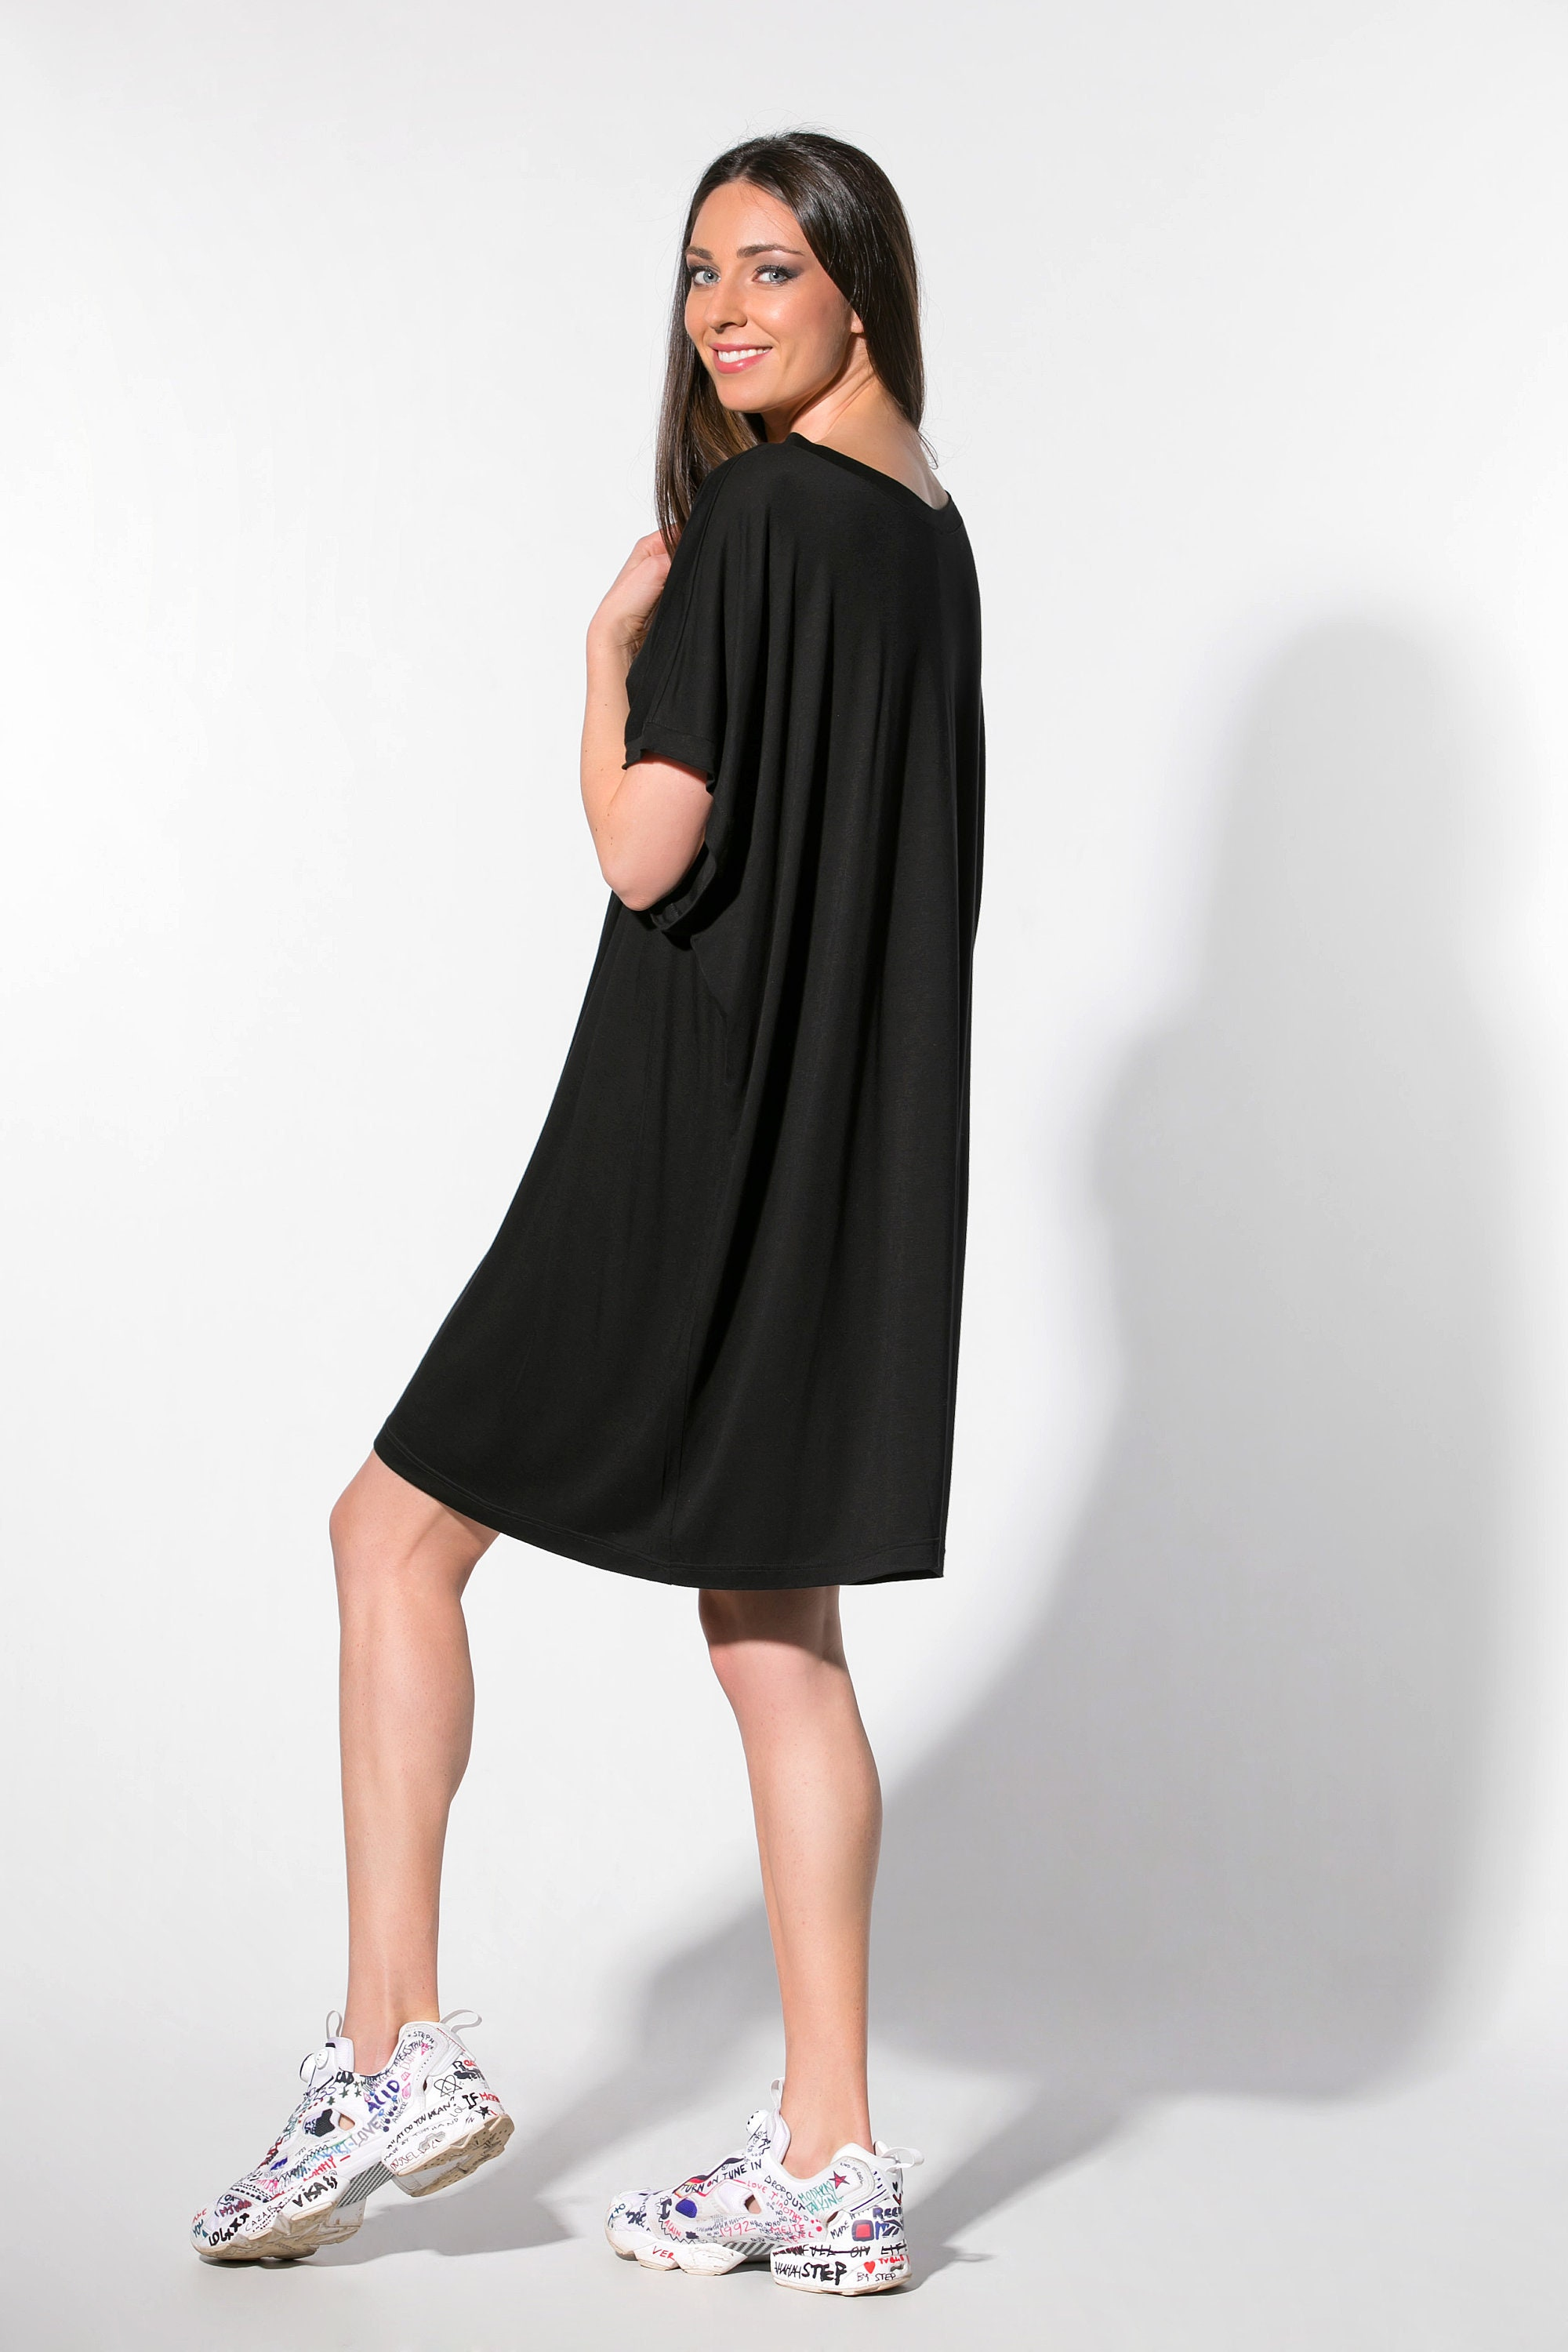 T Shirt Dress With Boat Neckline 109326 Etsy